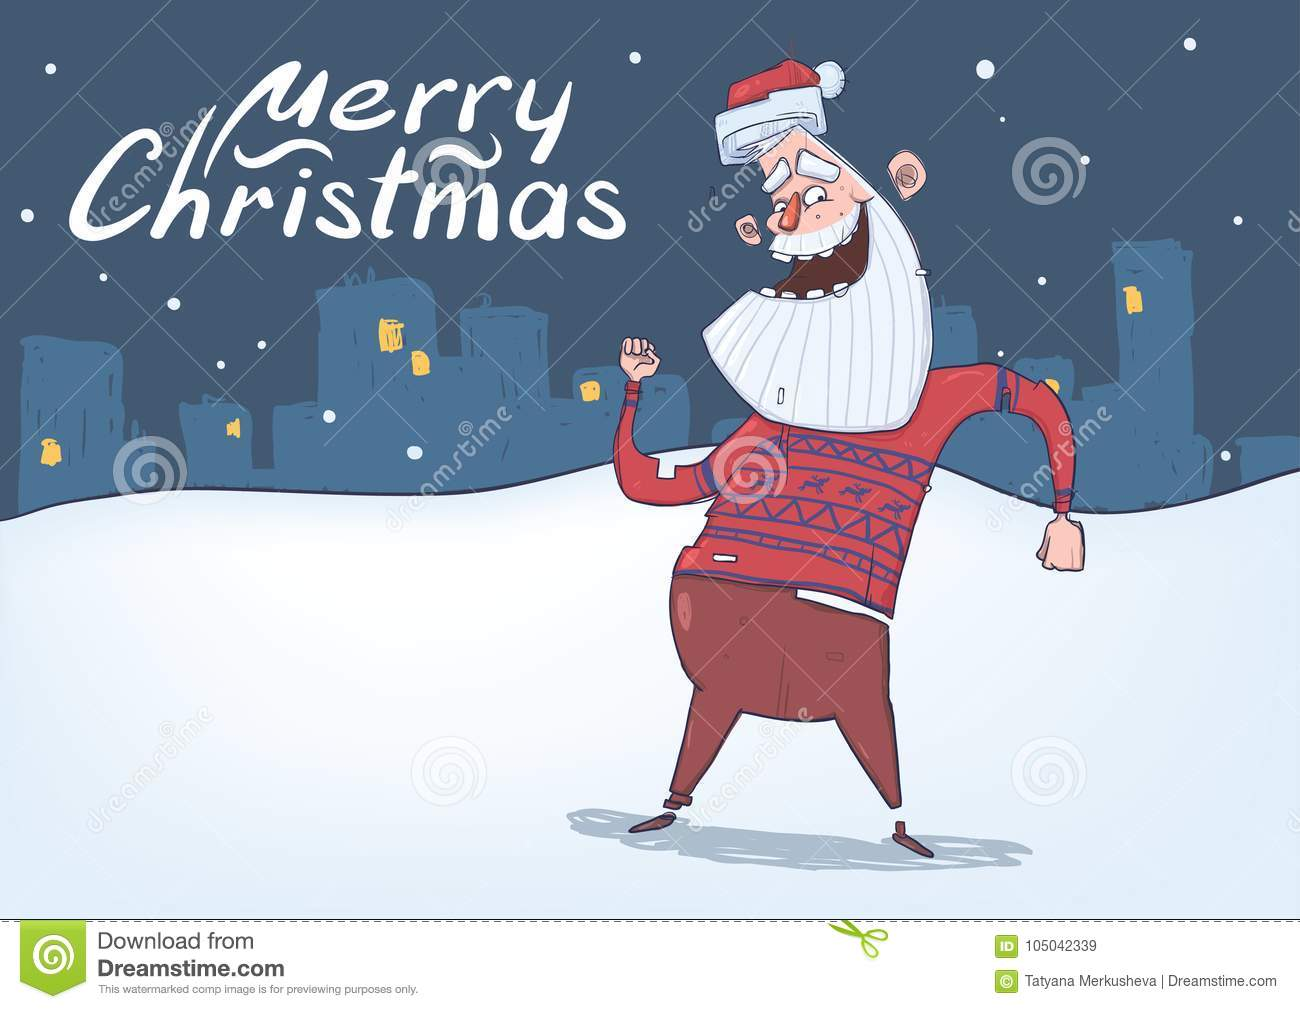 Christmas Card With Funny Santa Claus Smiling And Dancing Stock ...